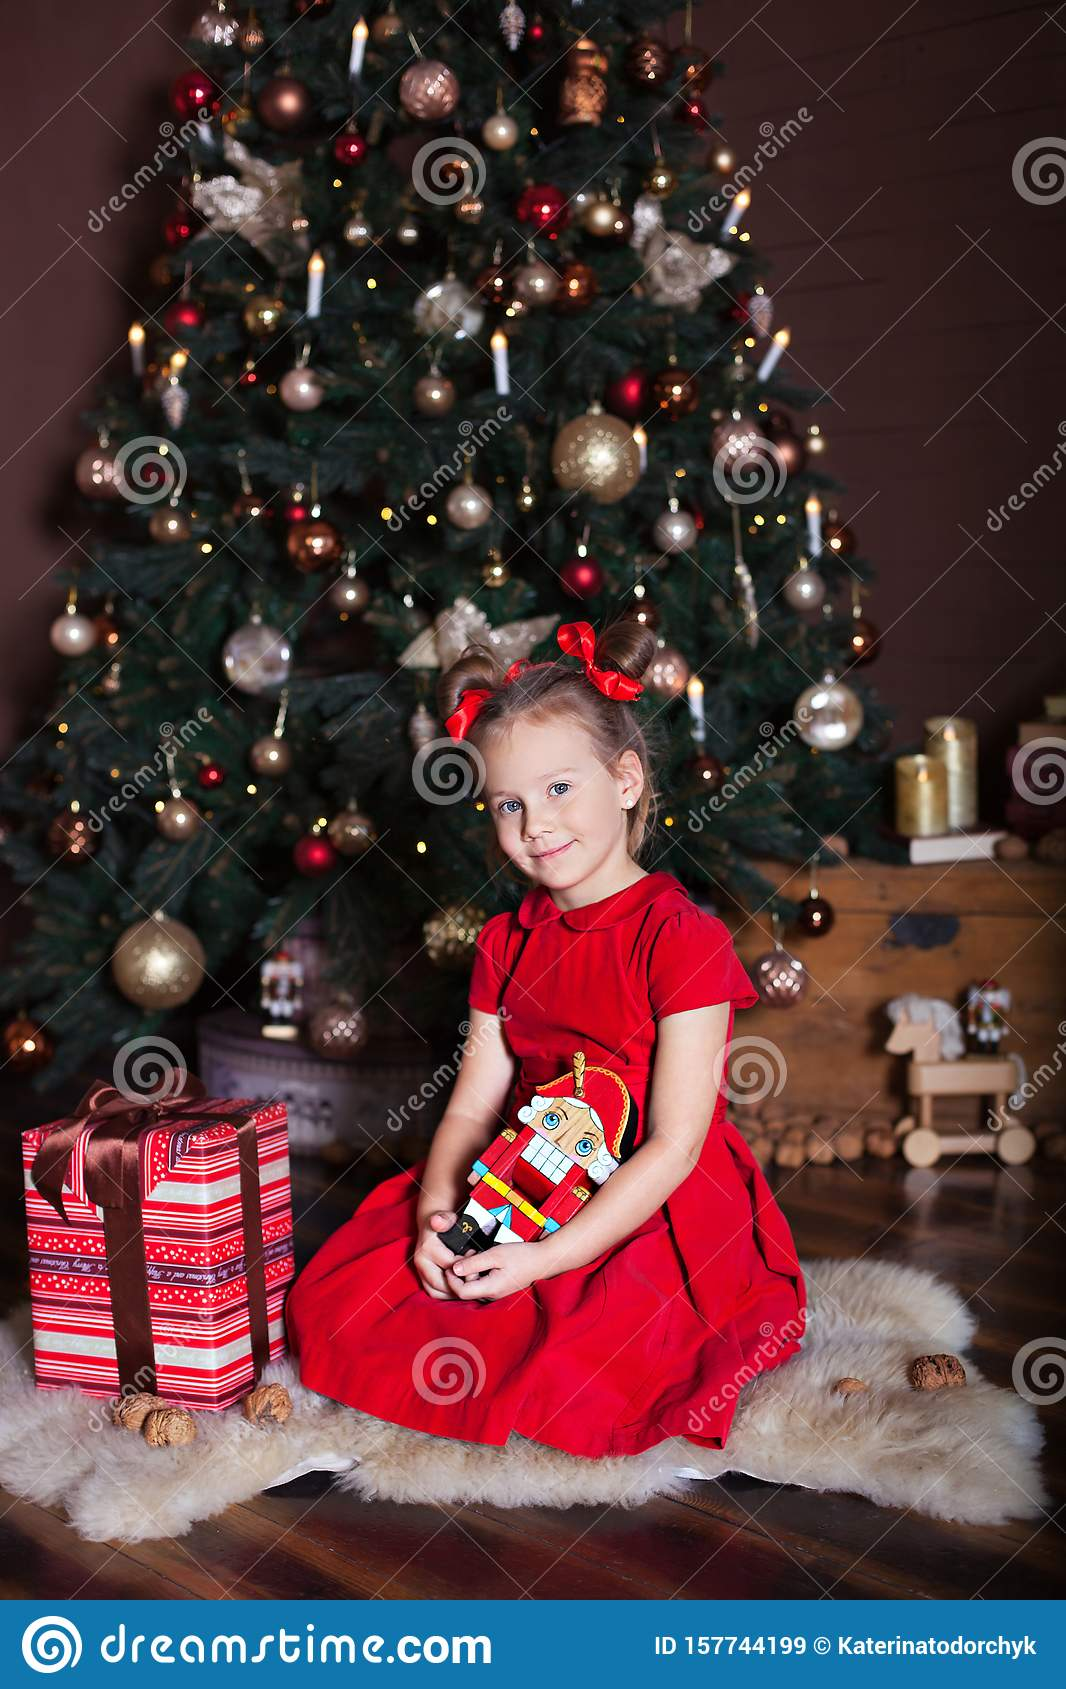 New Year 2020. Merry Christmas, happy holidays. Cute girl holds a nutcracker toy in hands in front of a Christmas tree and gifts.